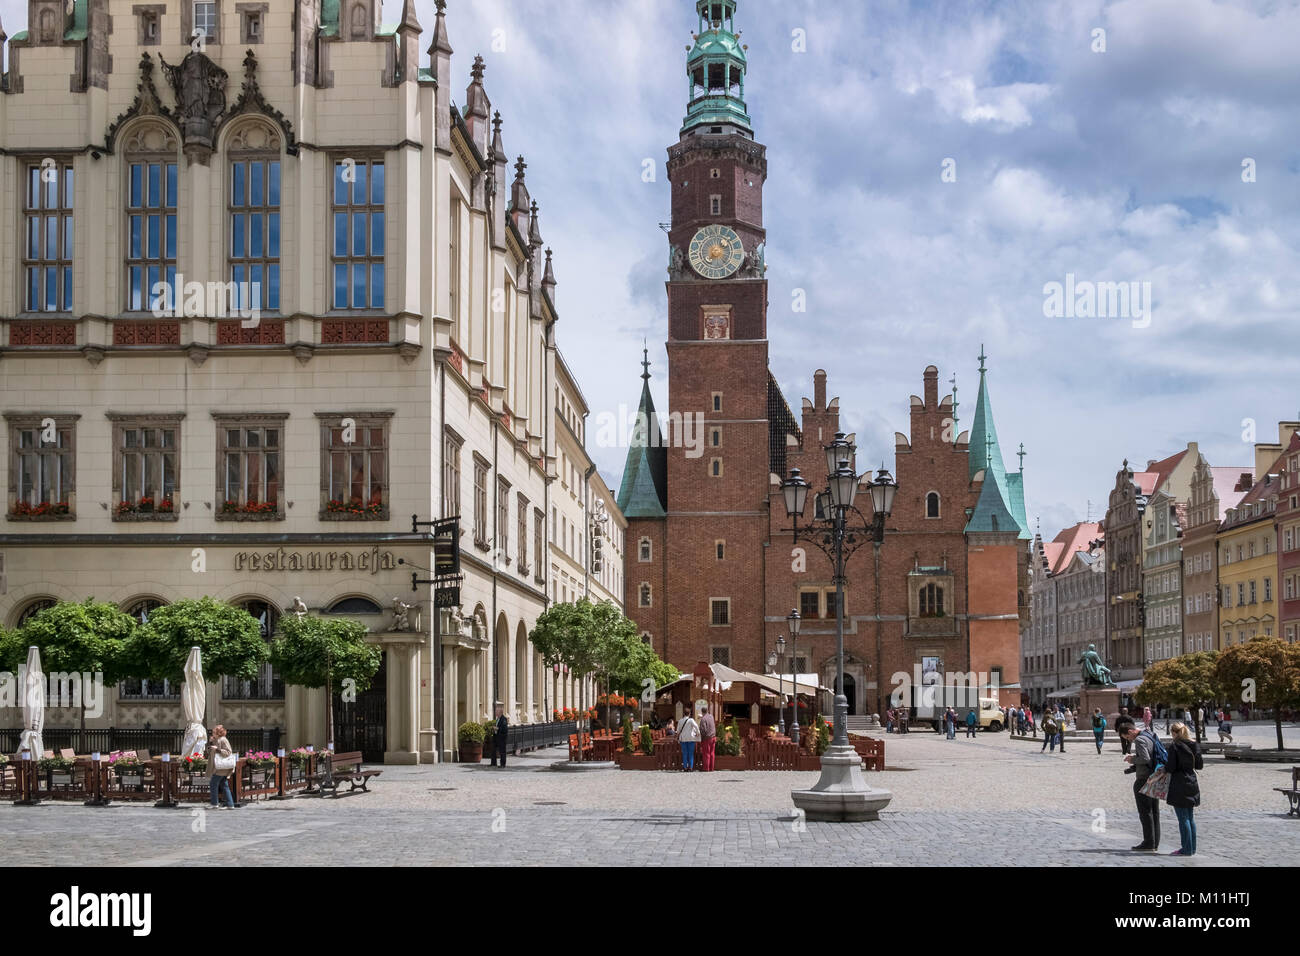 Traditional architecture in Wroclaw Old Town, showing west elevation of the Town Hall tower and clock, Wroclaw, Stock Photo